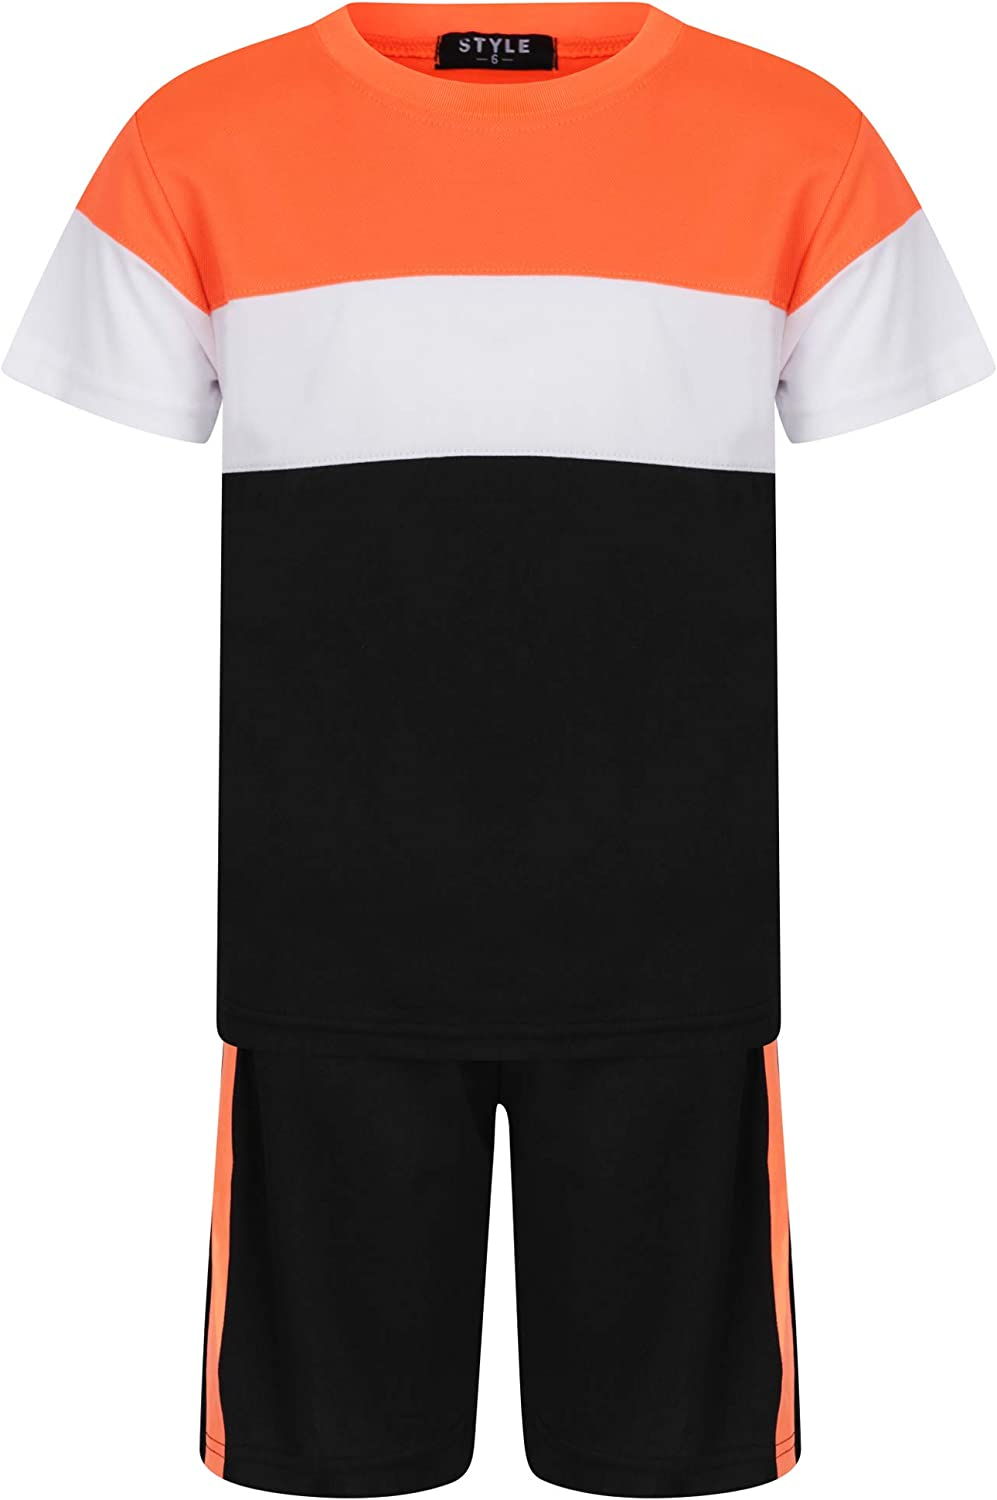 Aelstores Boys Two Toned Striped Co Ords T-Shirt and Shorts Set Outfit for Summer Age 3-14 Years